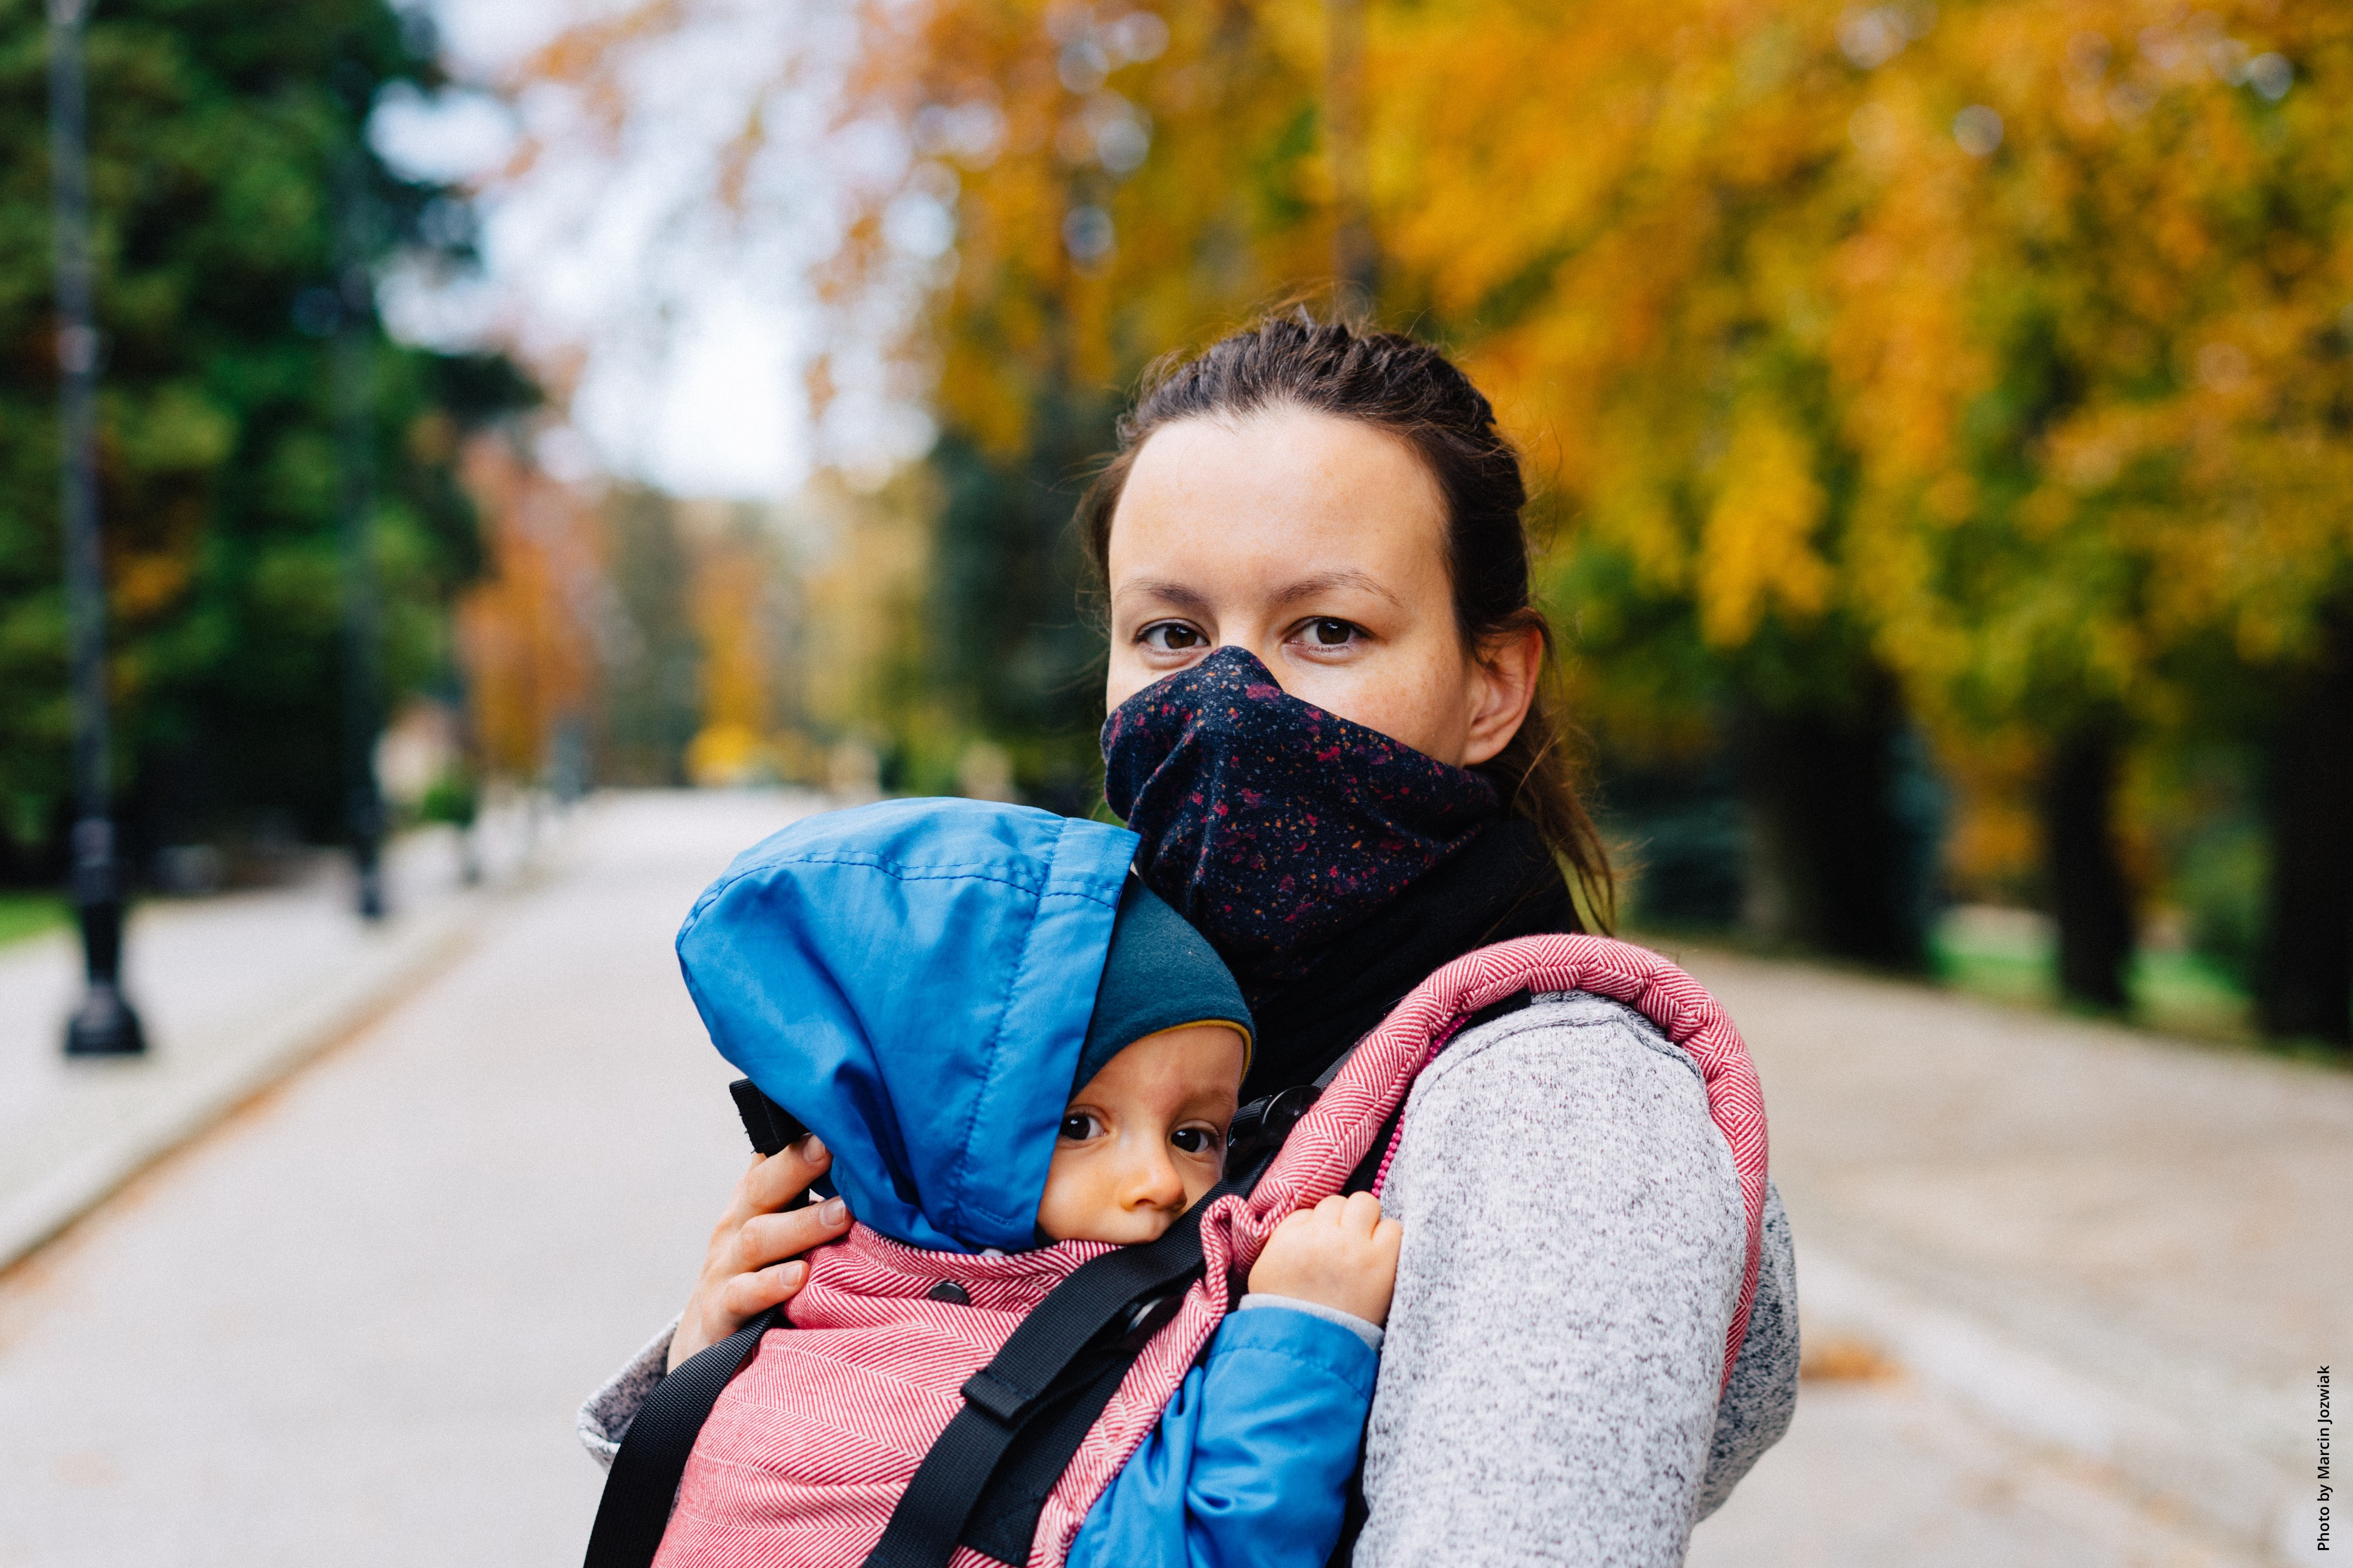 Young mother wearing COVID-19 protection mask holds her young child while crossing a street. Photo by Marcin Jozwiak.